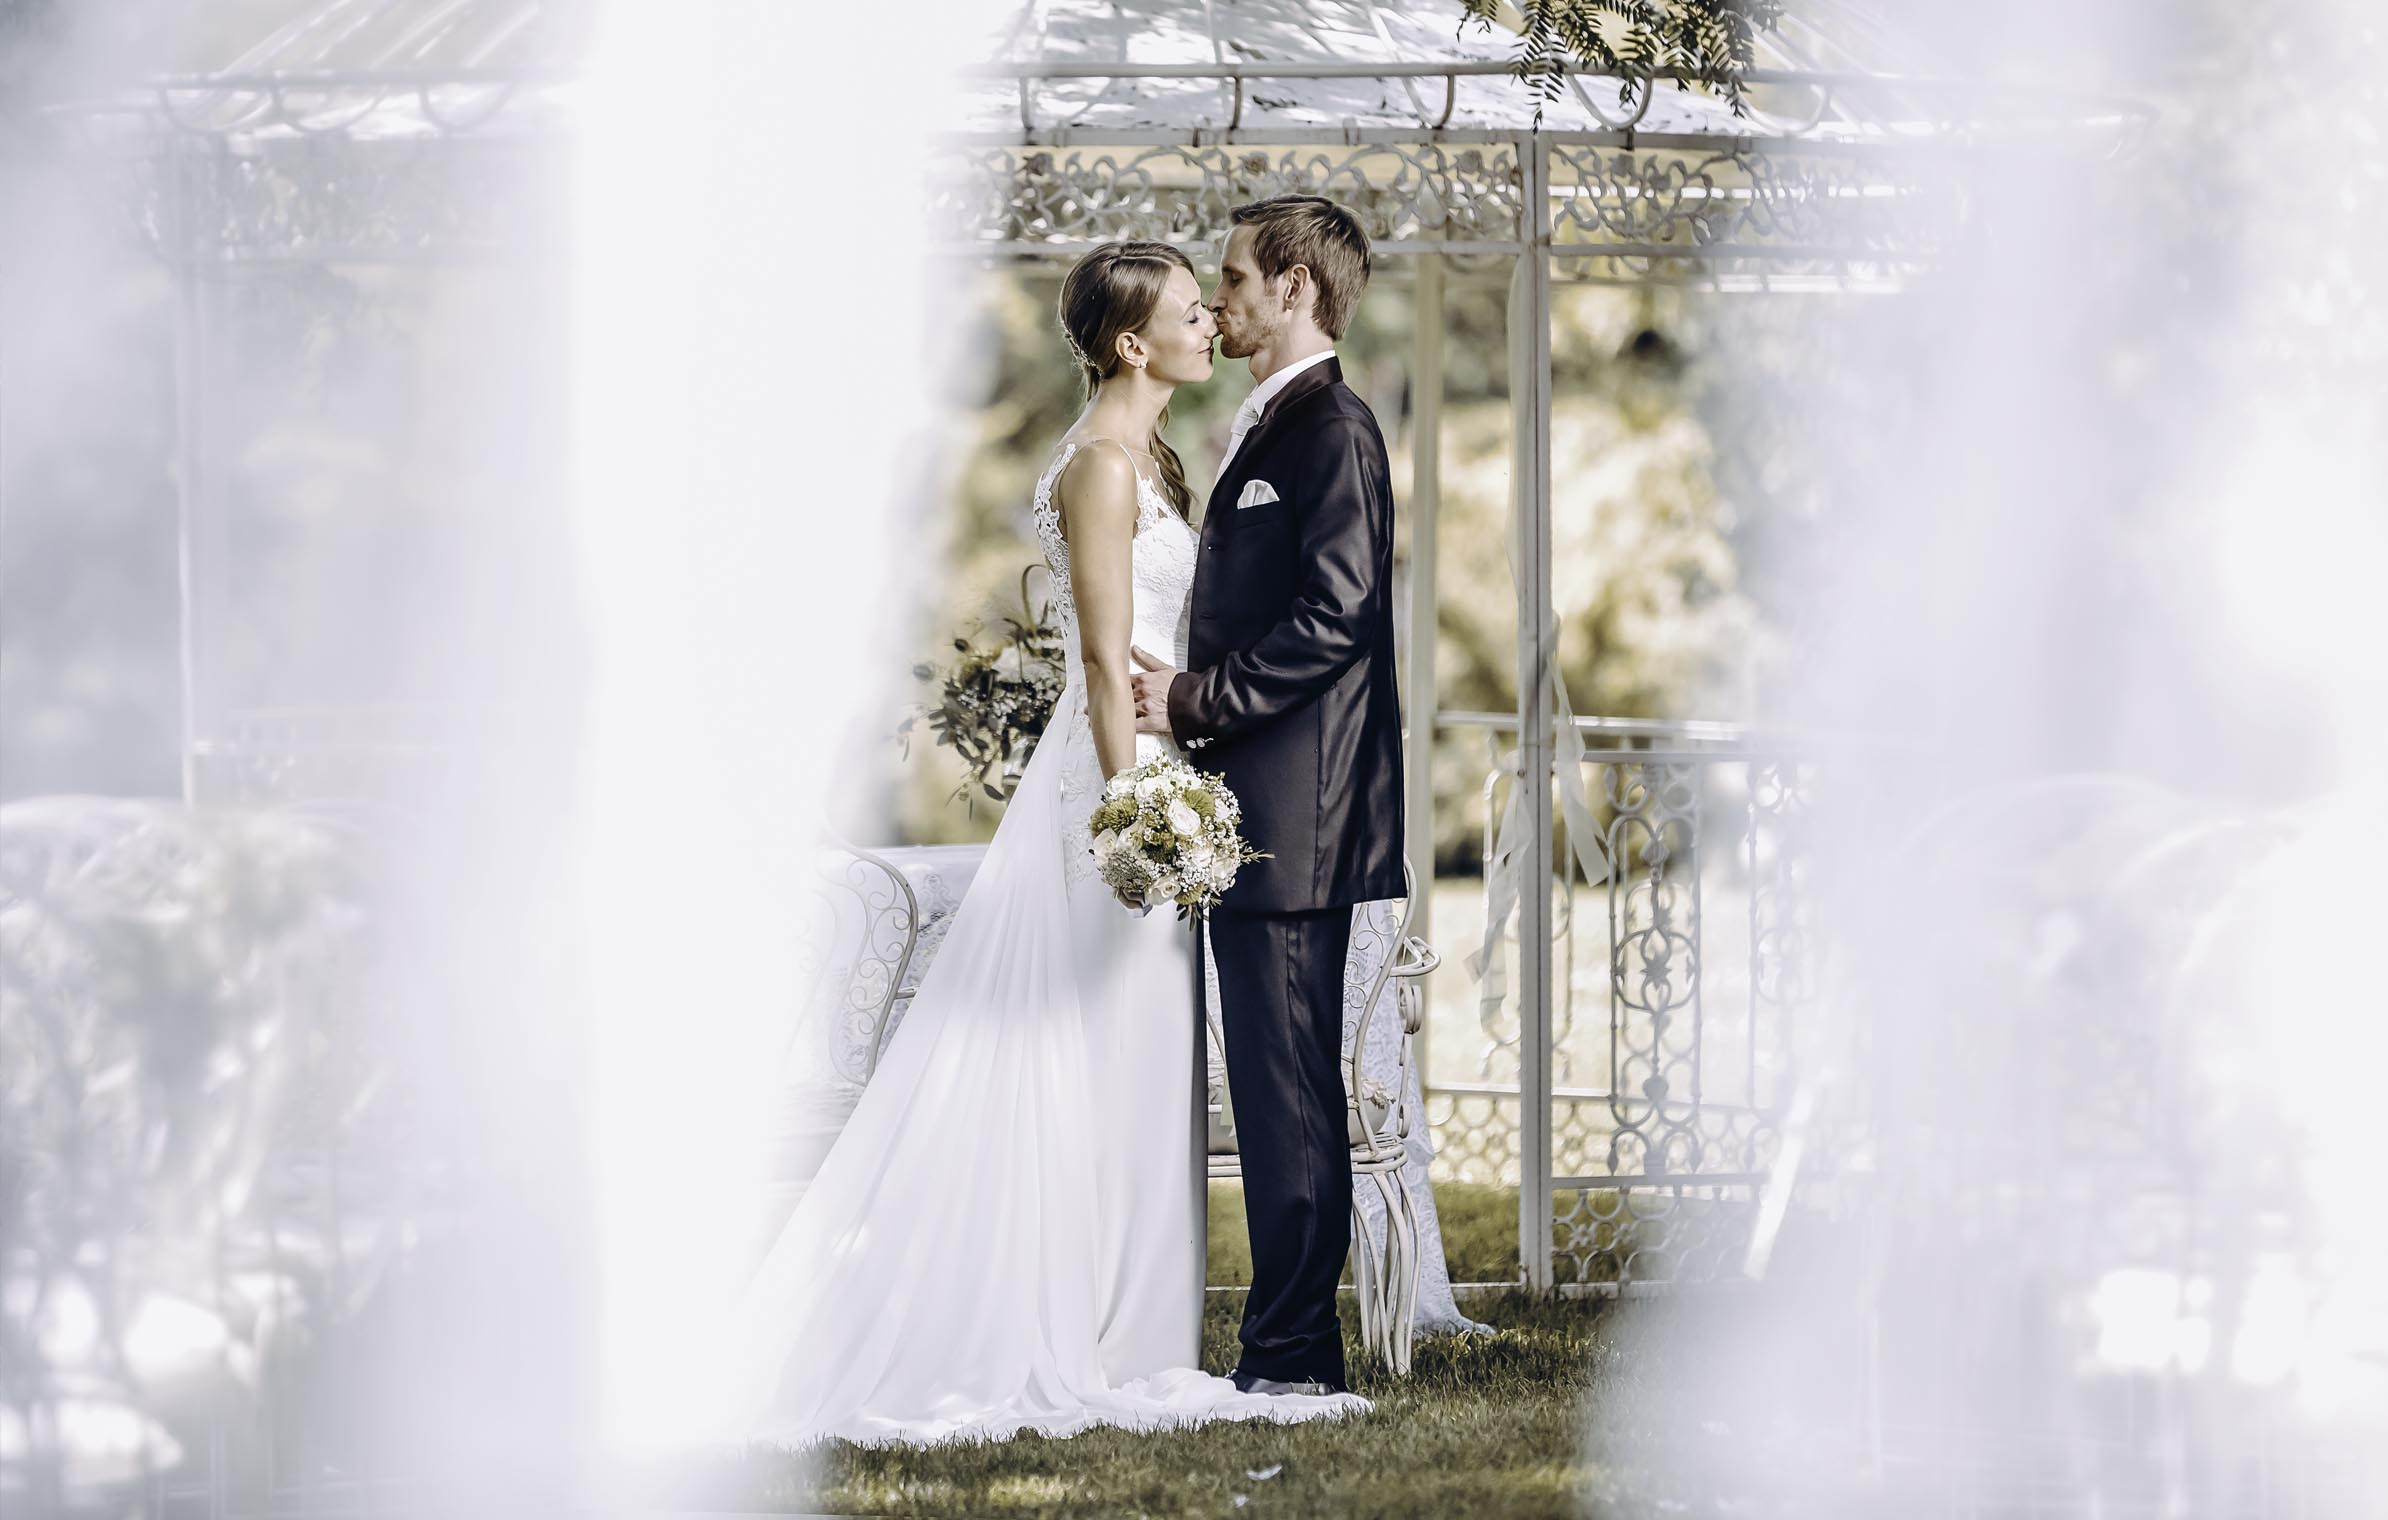 wedding_rober_corinna_st.veit_graz_love_liebe_ehepaar_heiraten